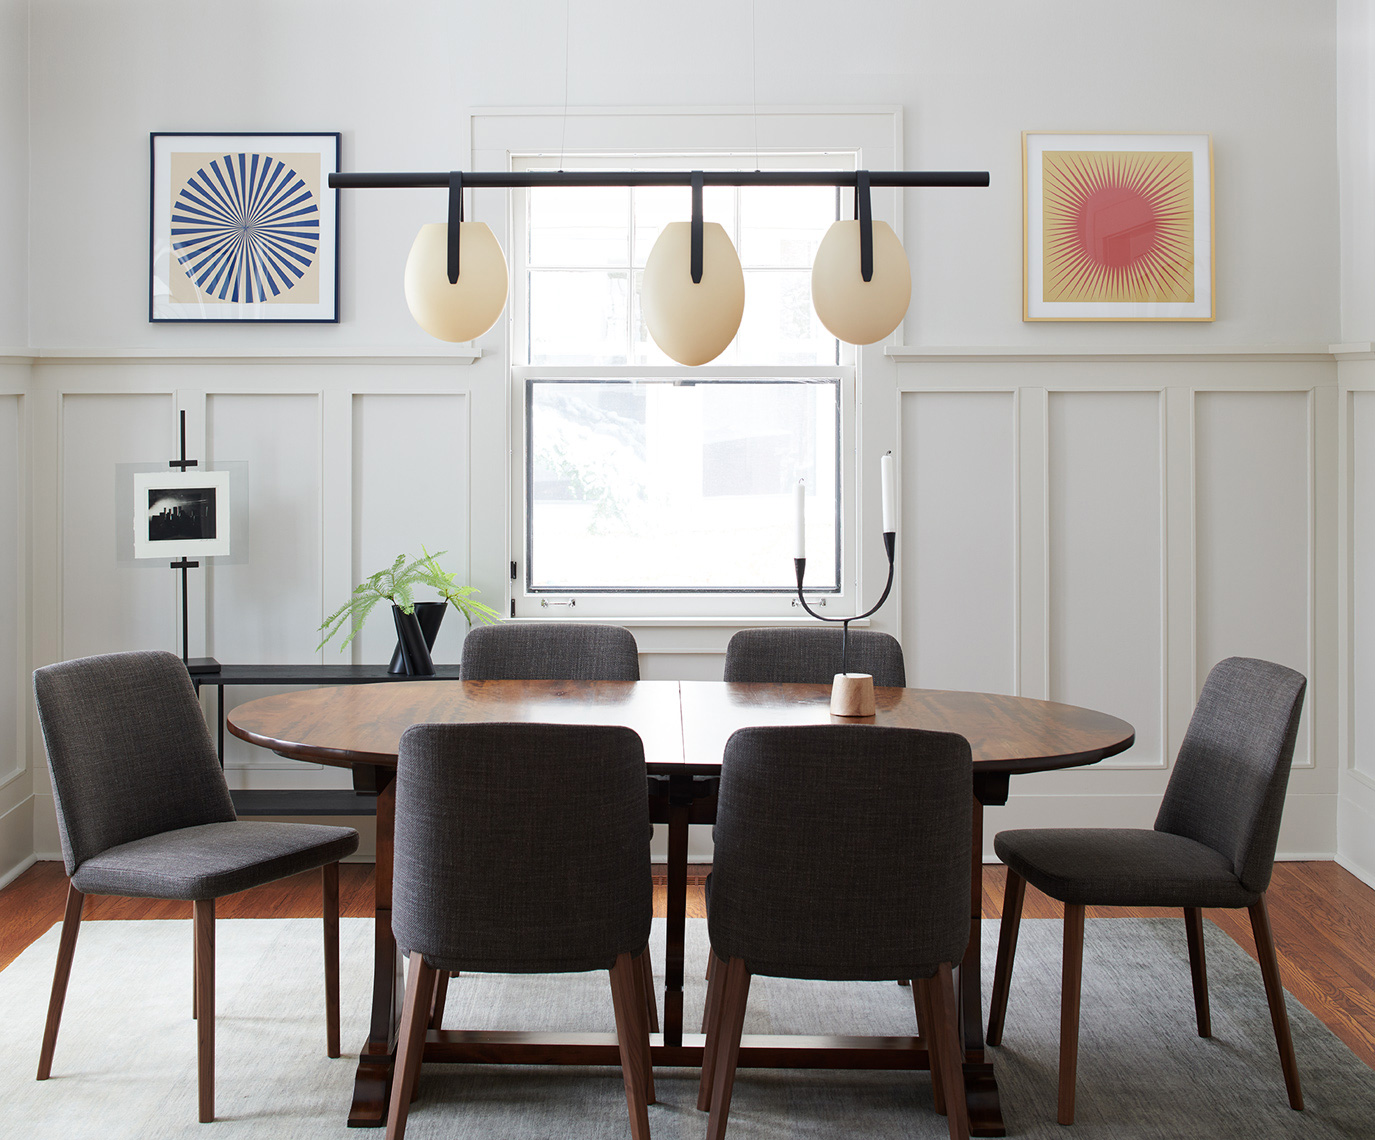 JeffJohnson_Photography_Modern_Interior_Design_Dining_Room